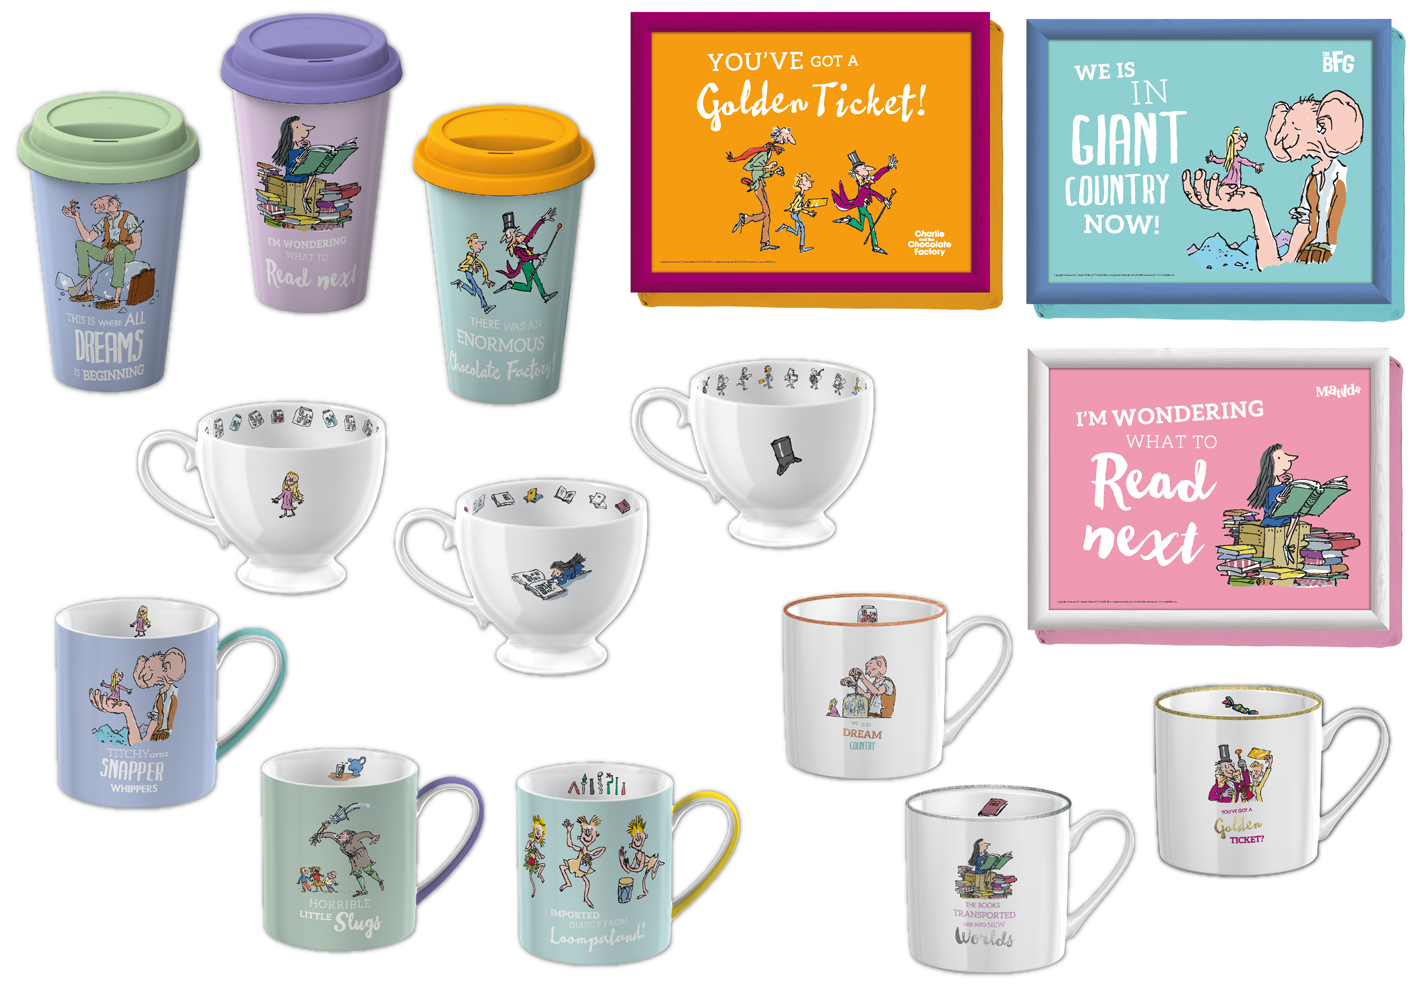 Roald Dahl Literary Estate sign Creative Tops as master homeware licensee